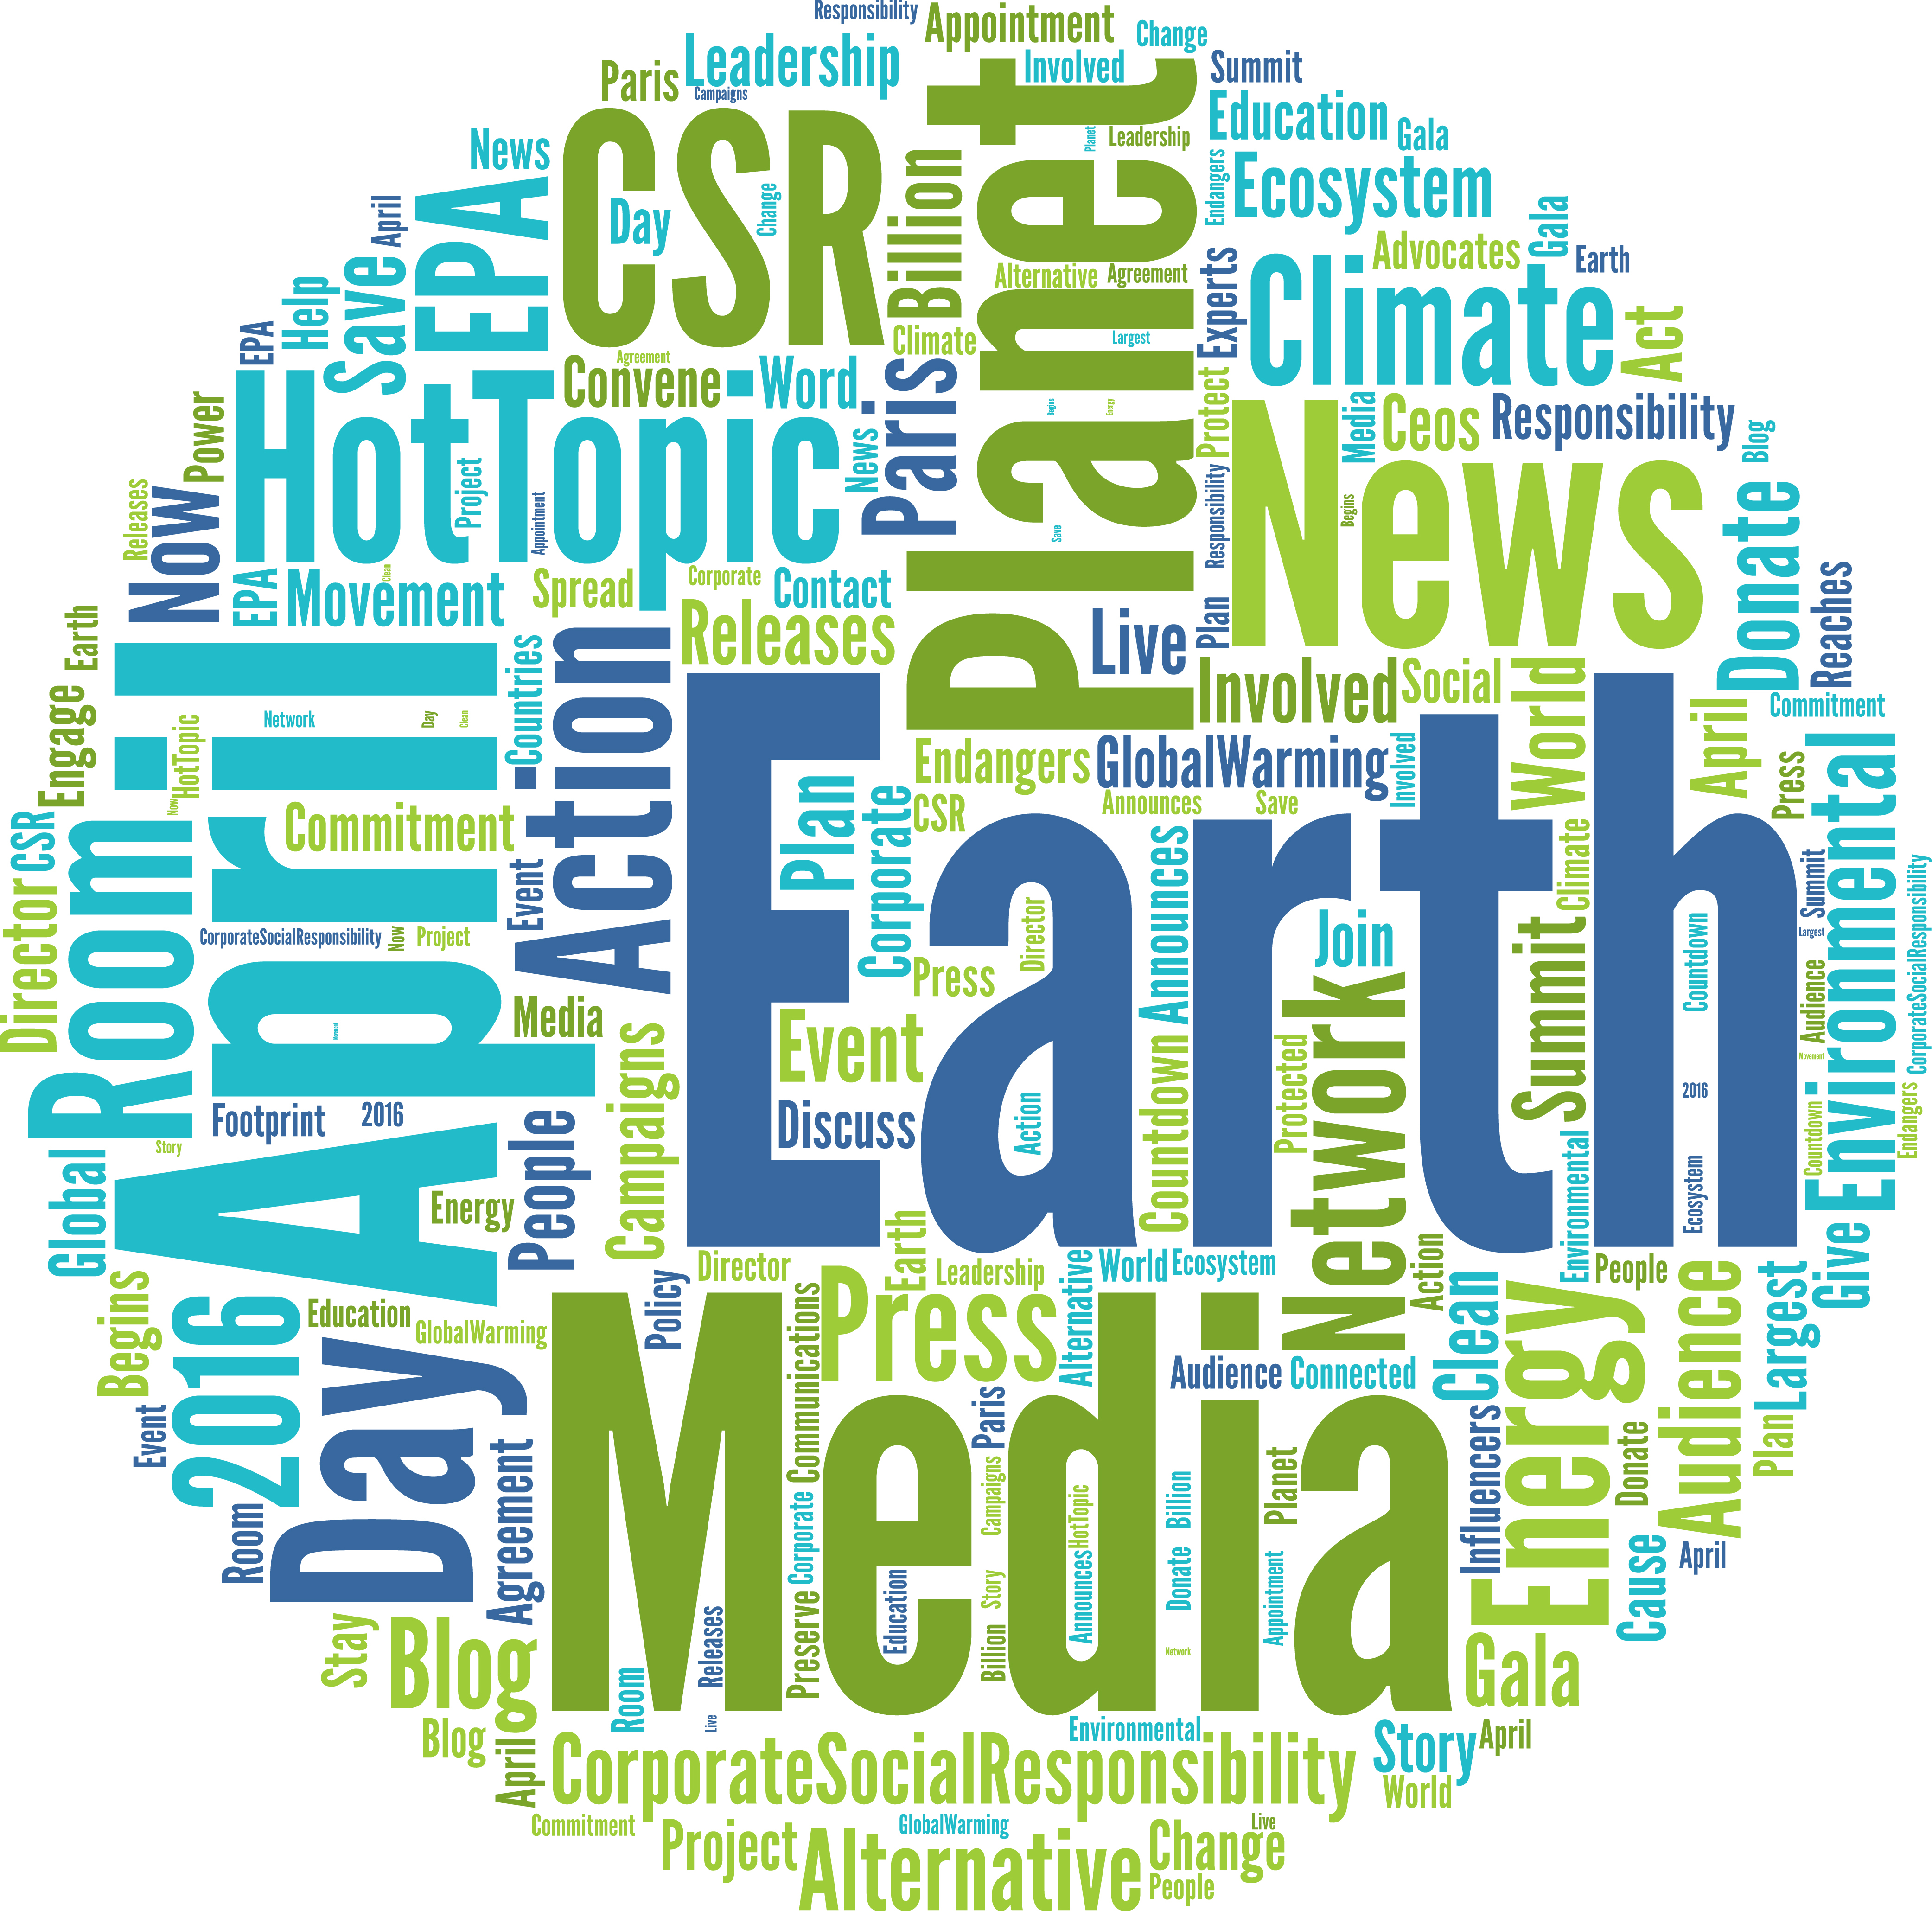 Earth Day Related News Releases and Story Ideas for Reporters ...